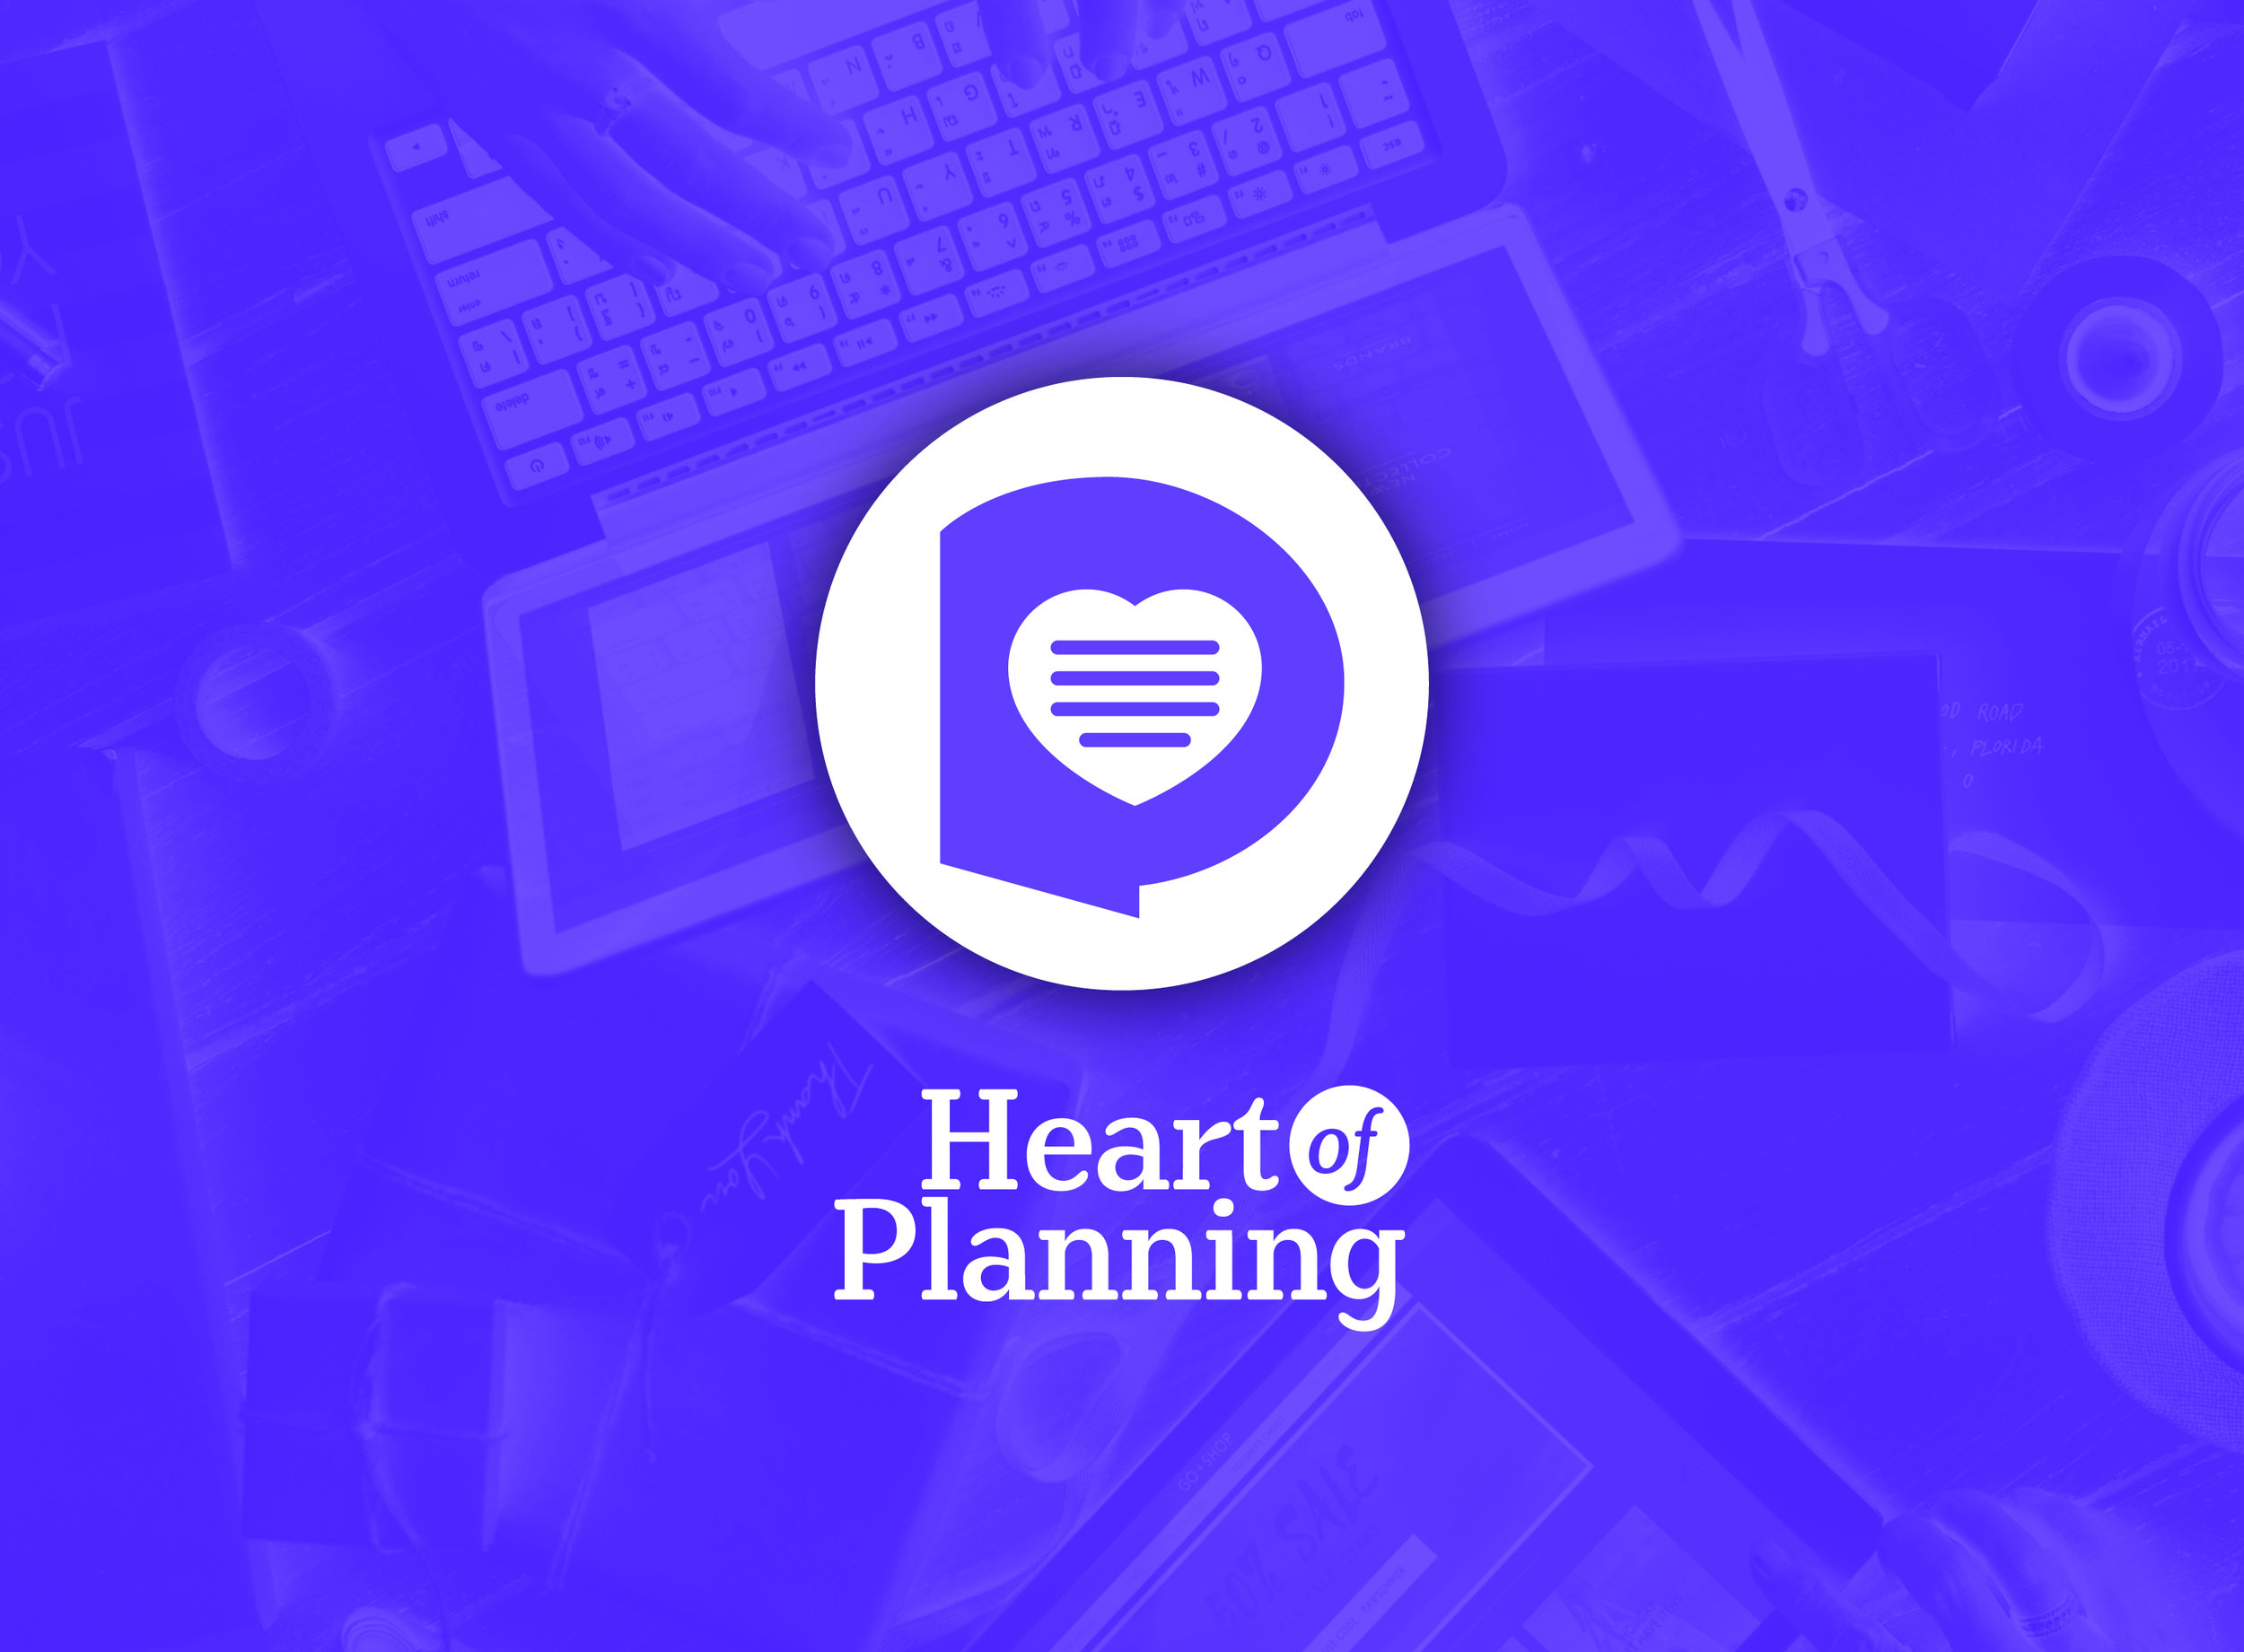 Heart of Planning App Logo Design